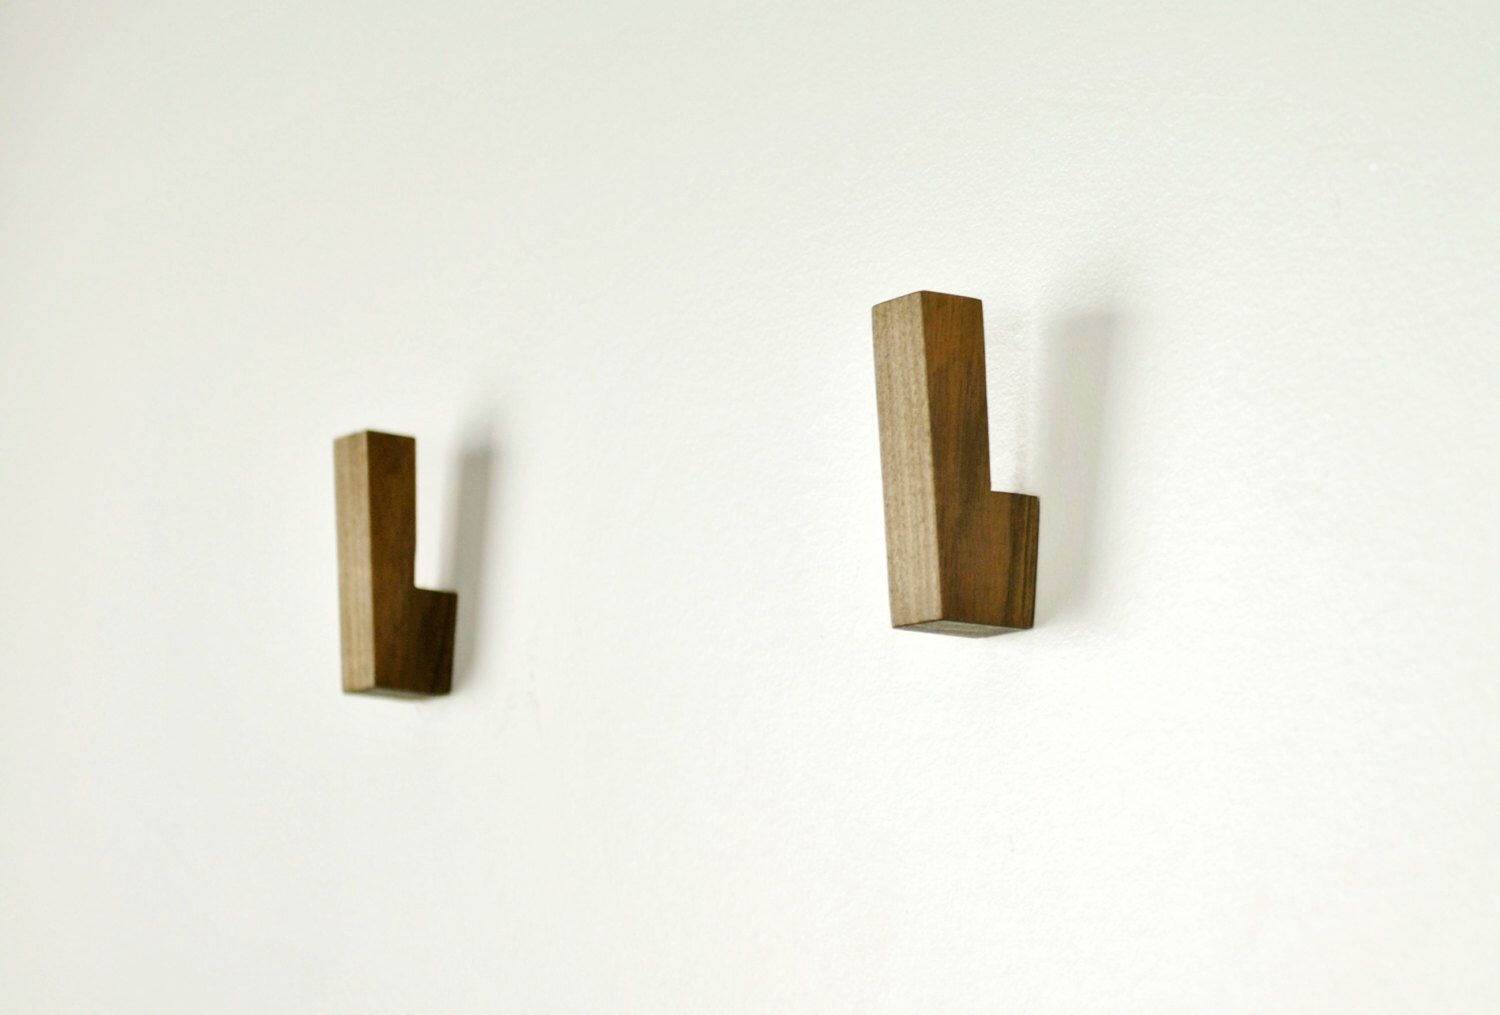 Wooden wall hooks wooden coat hooks by fmcdesign on etsy https www